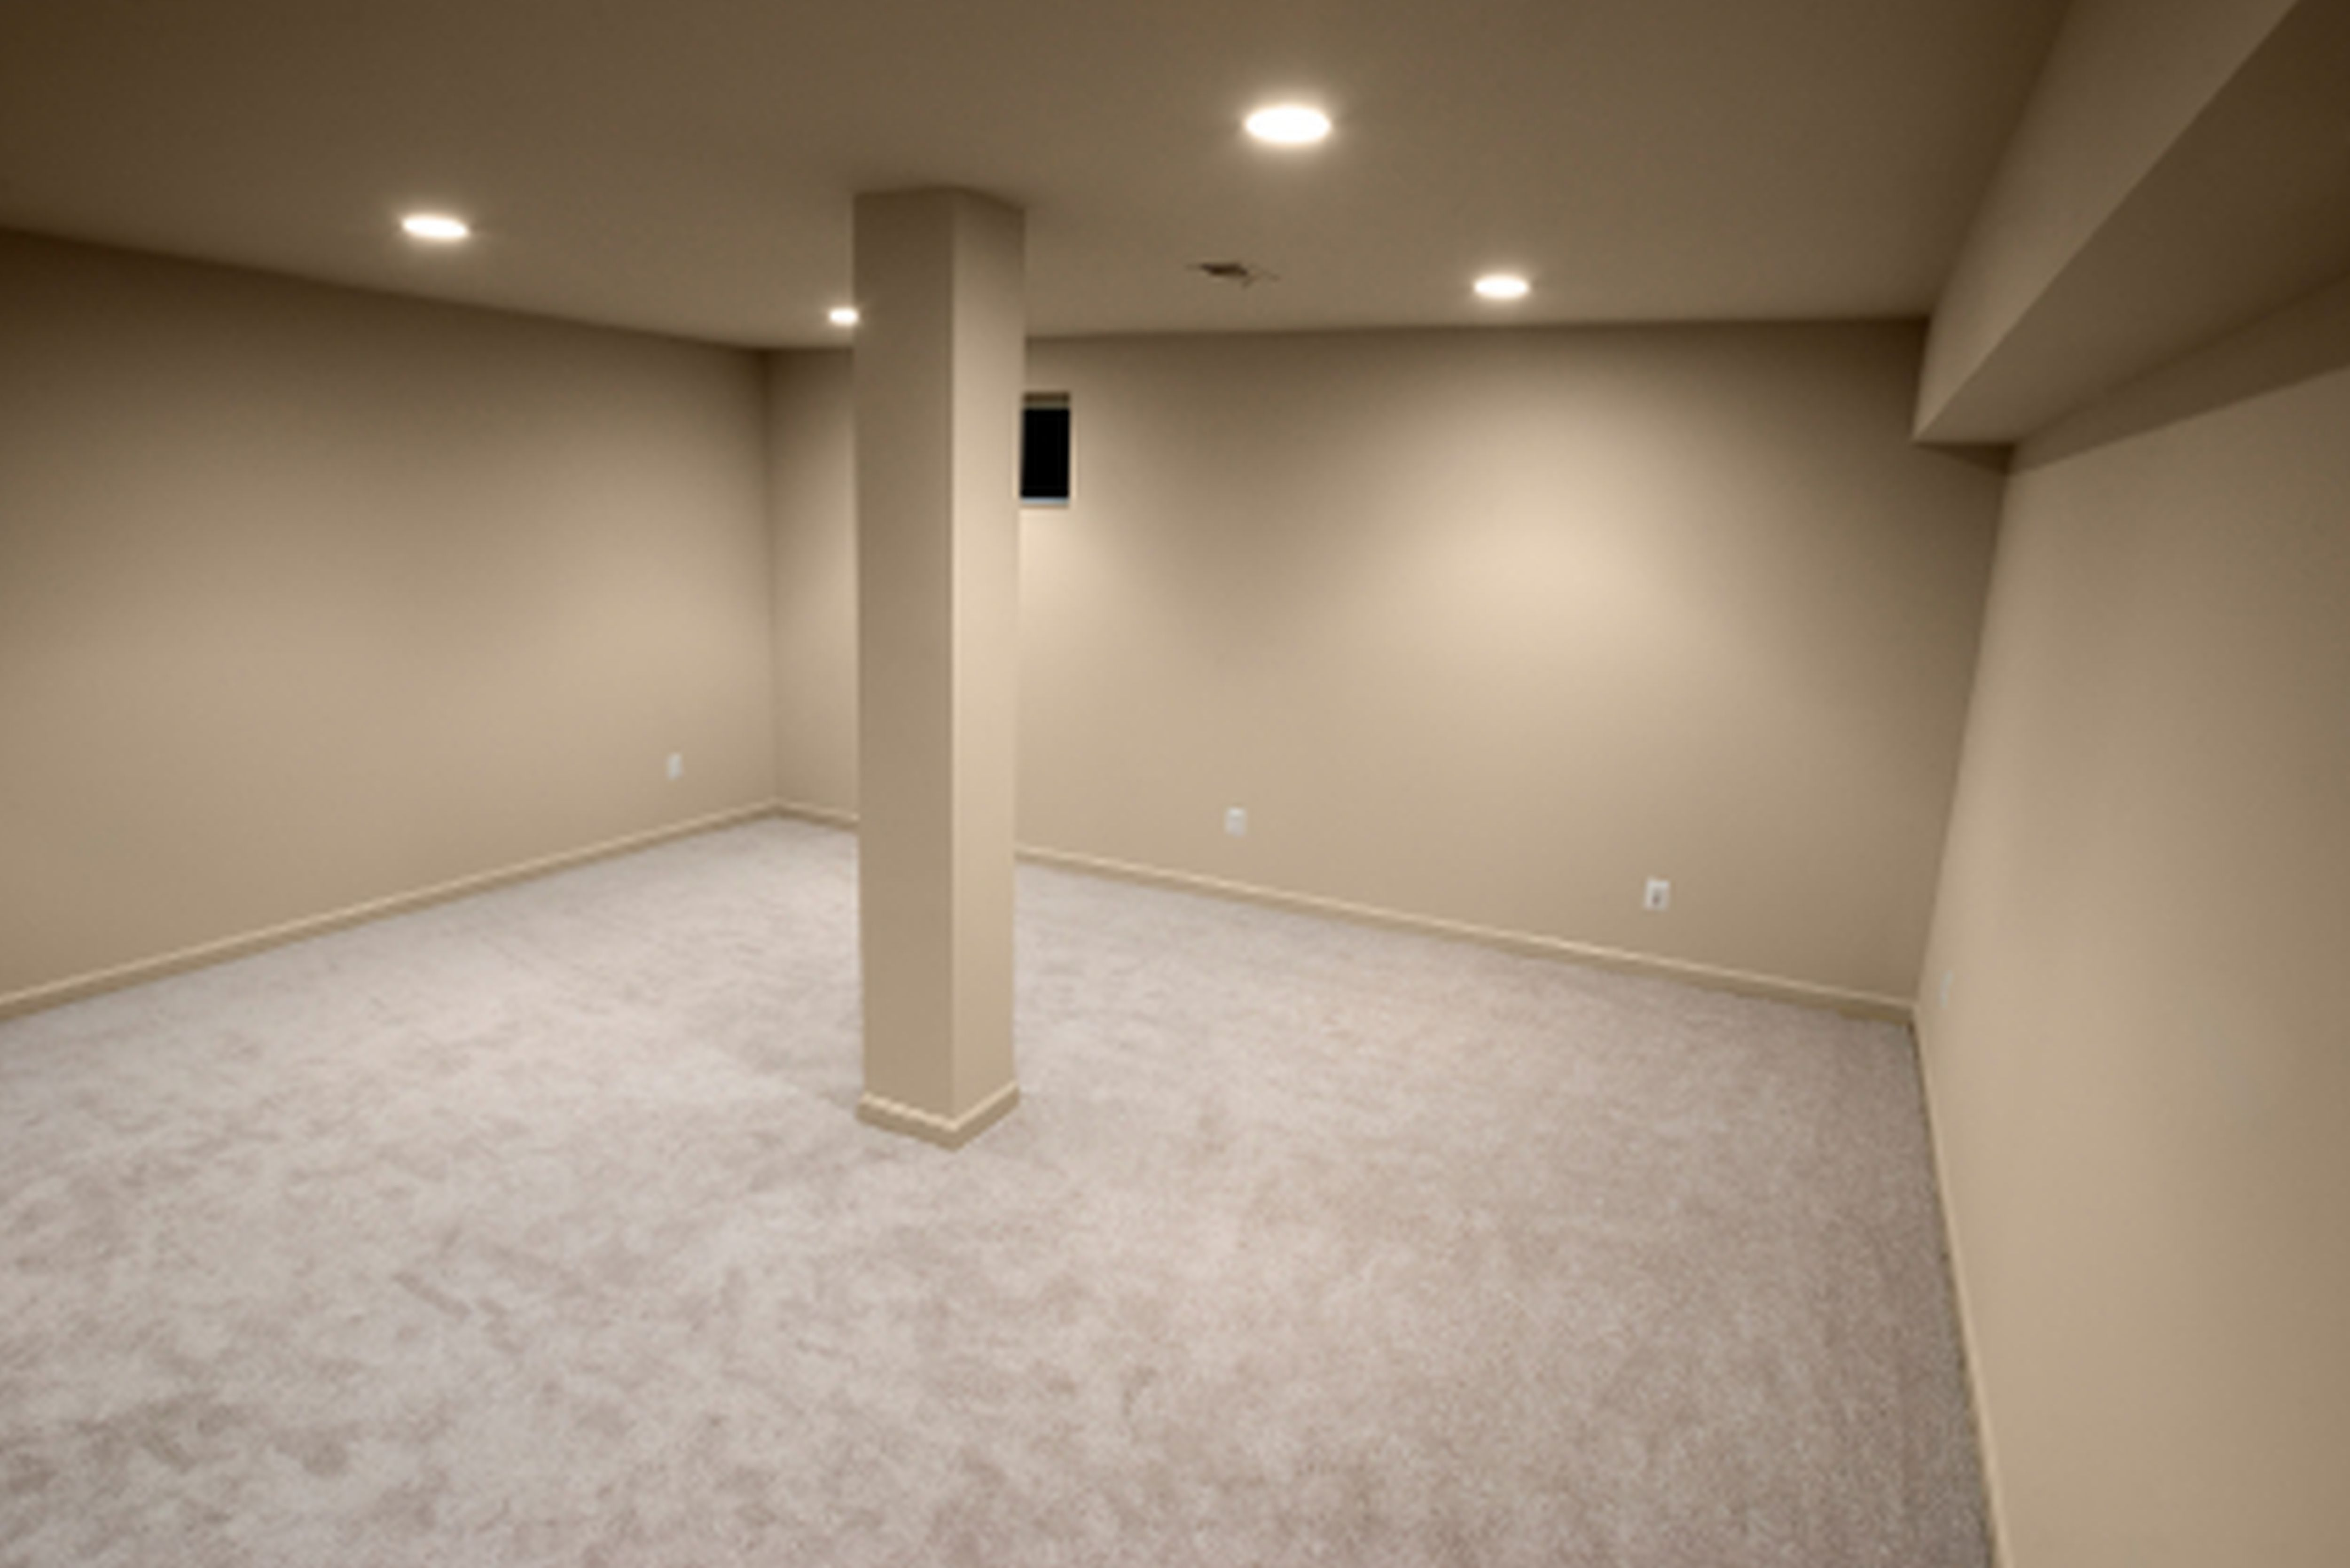 Amazing Basement Waterproof Paint Decorating Ideas interior painting concrete basement floor with white color plus wall and  ceiling with light brown interior color decor basement floor paint color  ideas